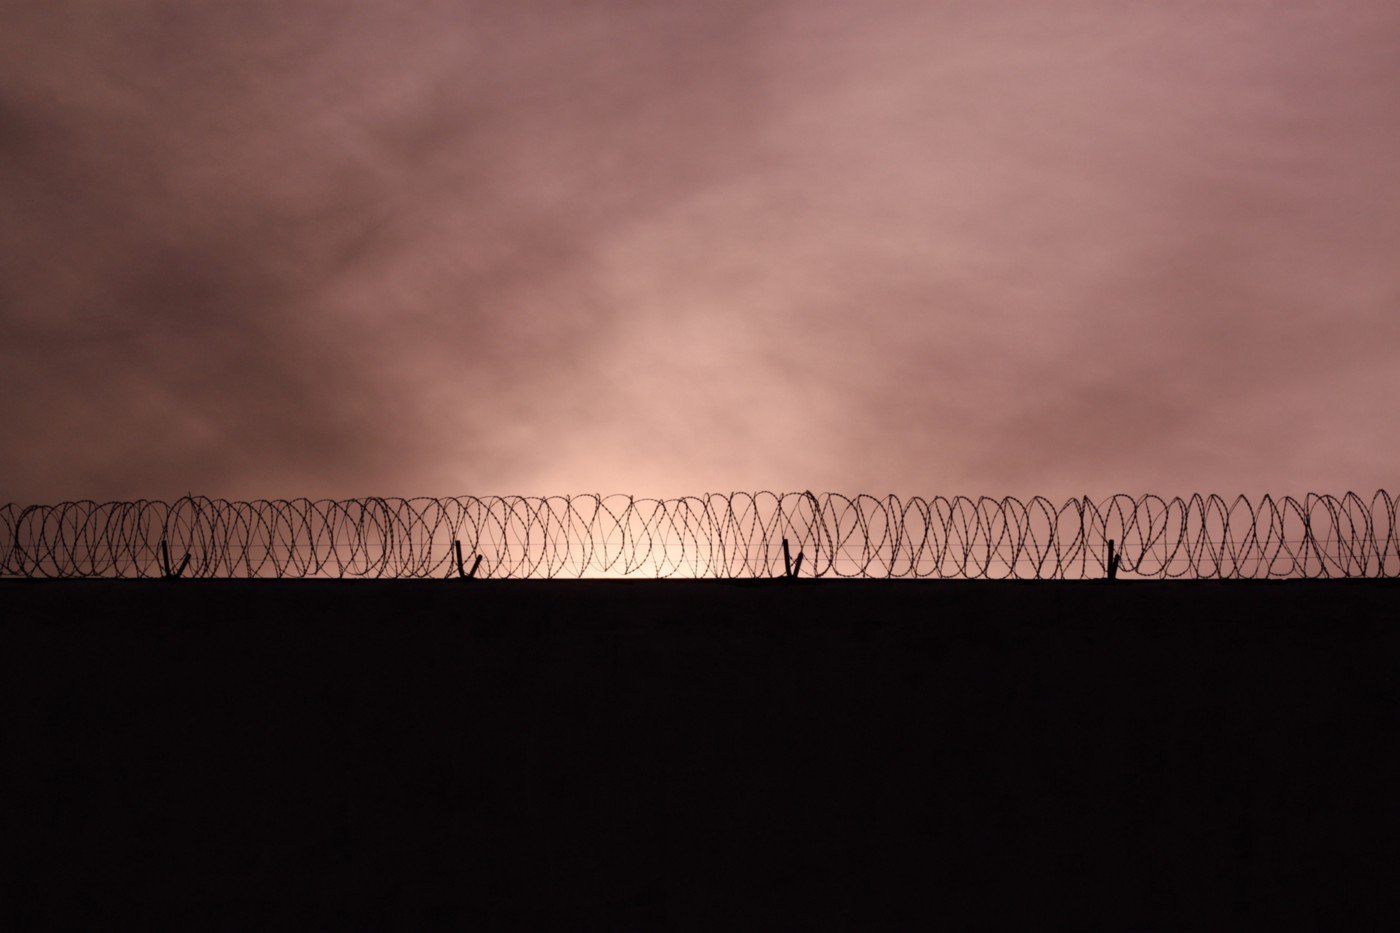 A photo of a barbed wire fence against a sunset sky.